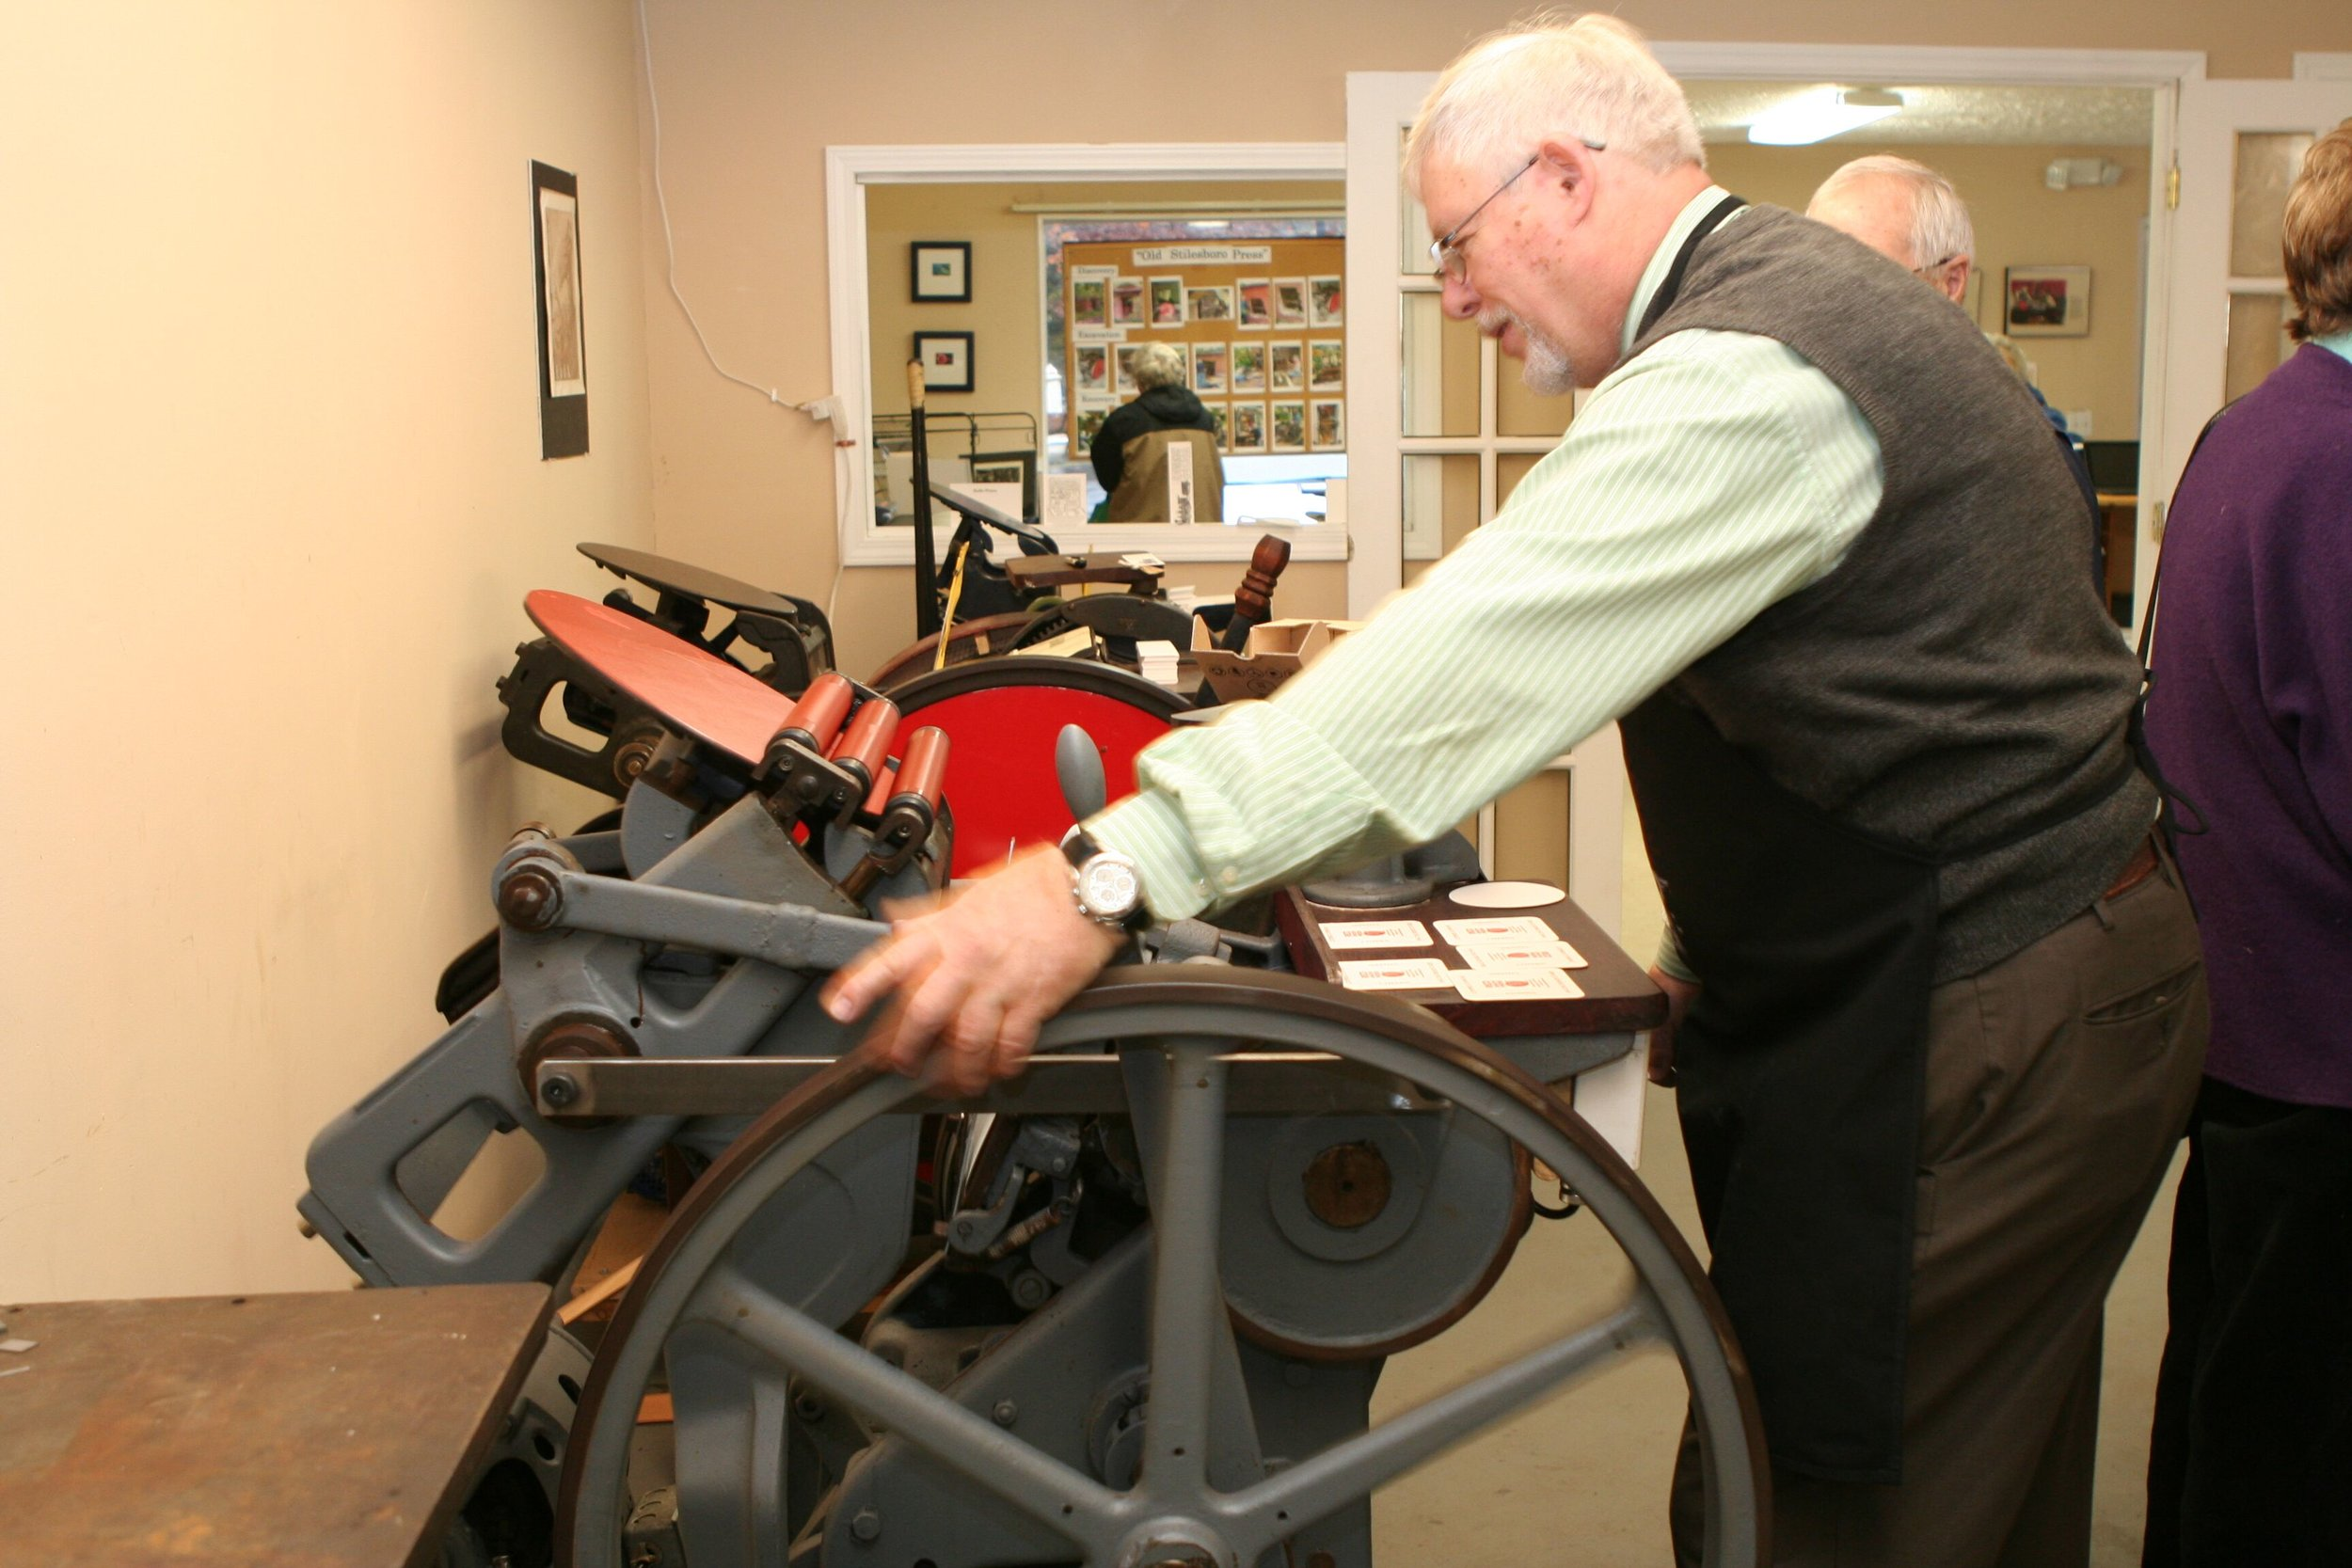 The weight of the press requires a push to get the flywheel to turn, allowing for the centrifugal force to maintain momentum.